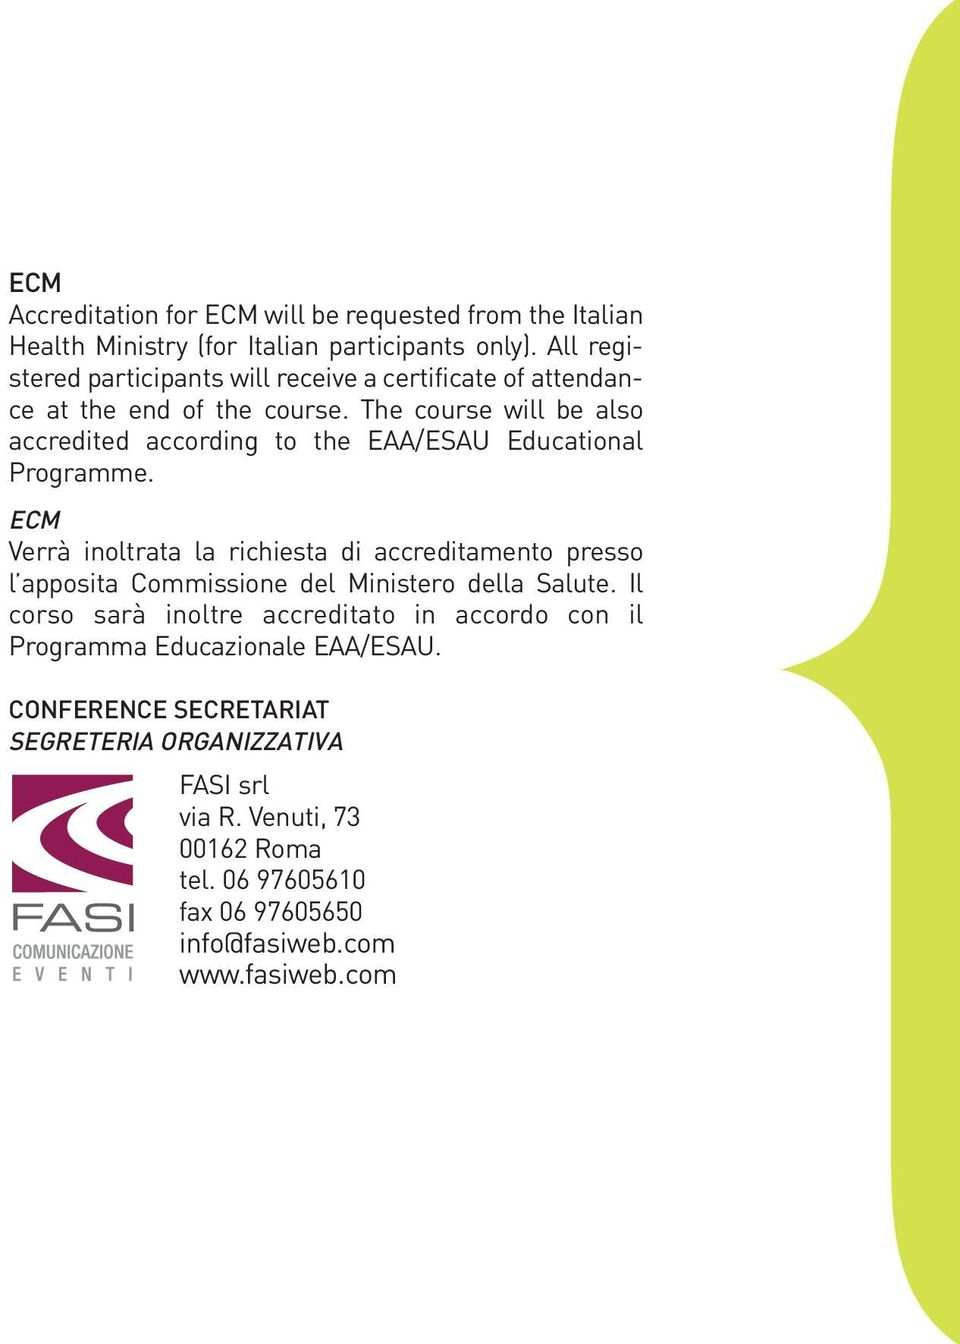 The course will be also accredited according to the EAA/ESAU Educational Programme.